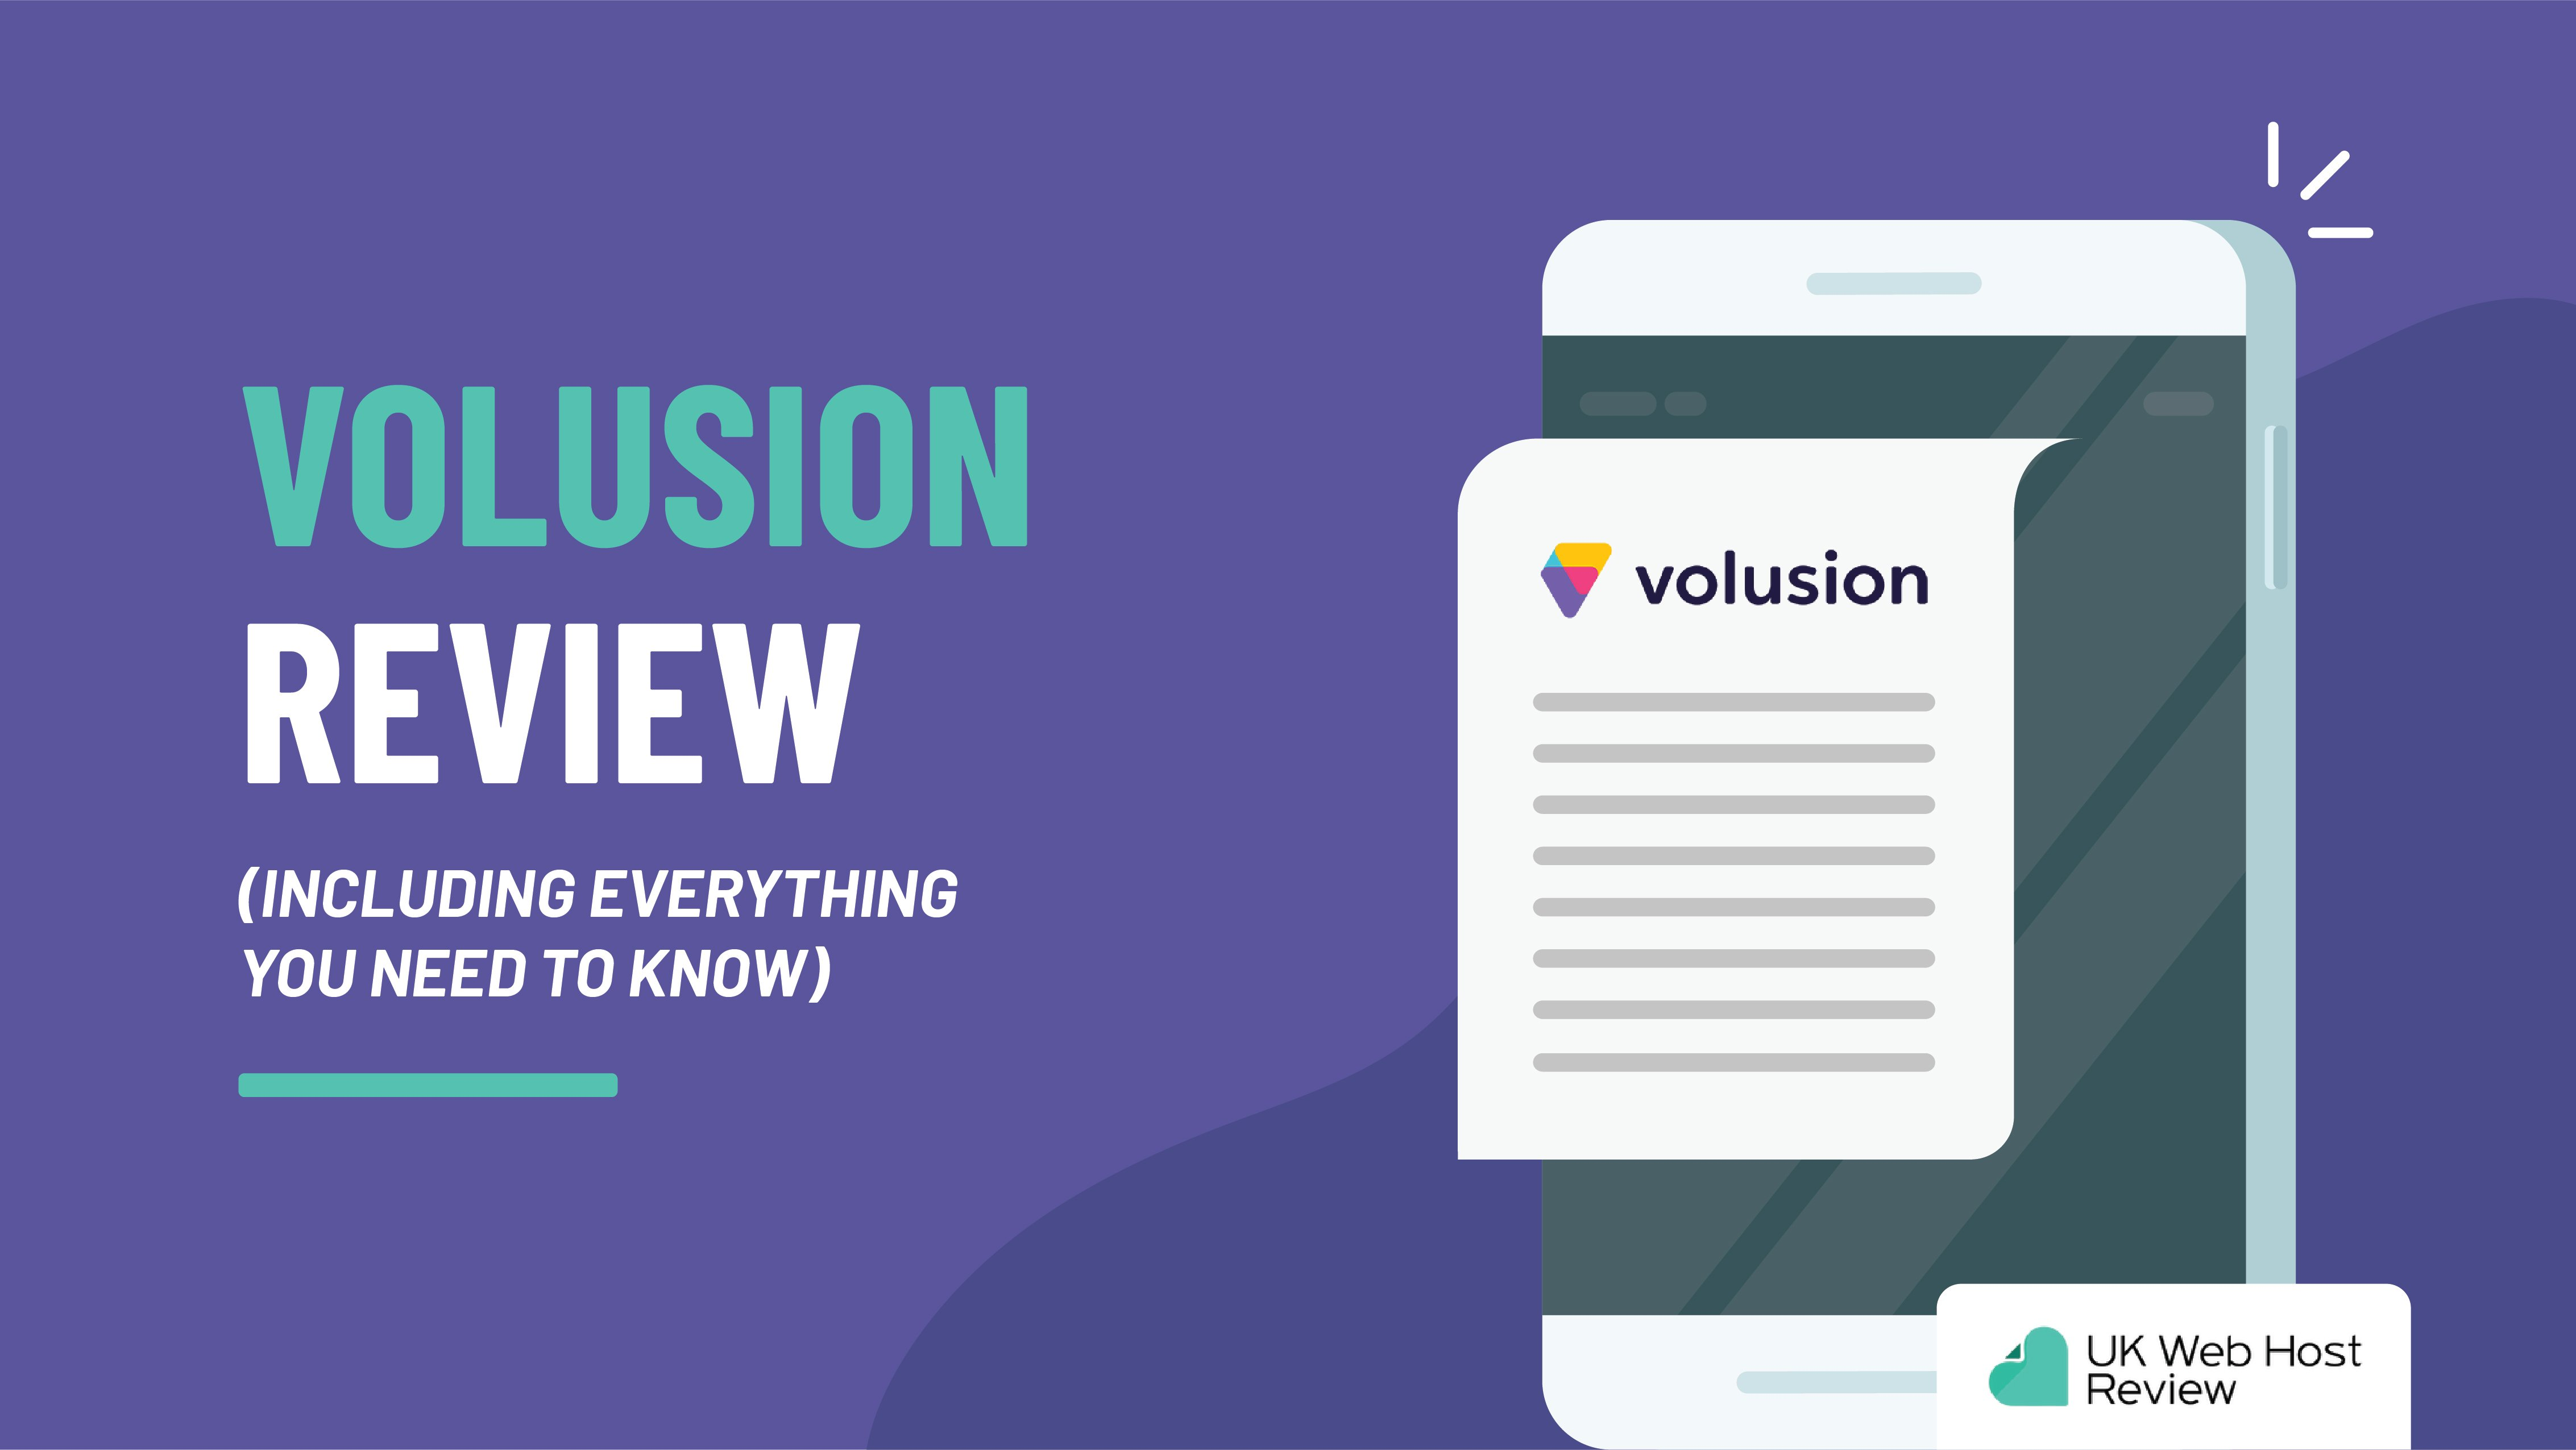 Volusion Review (Including Everything You Need to Know)